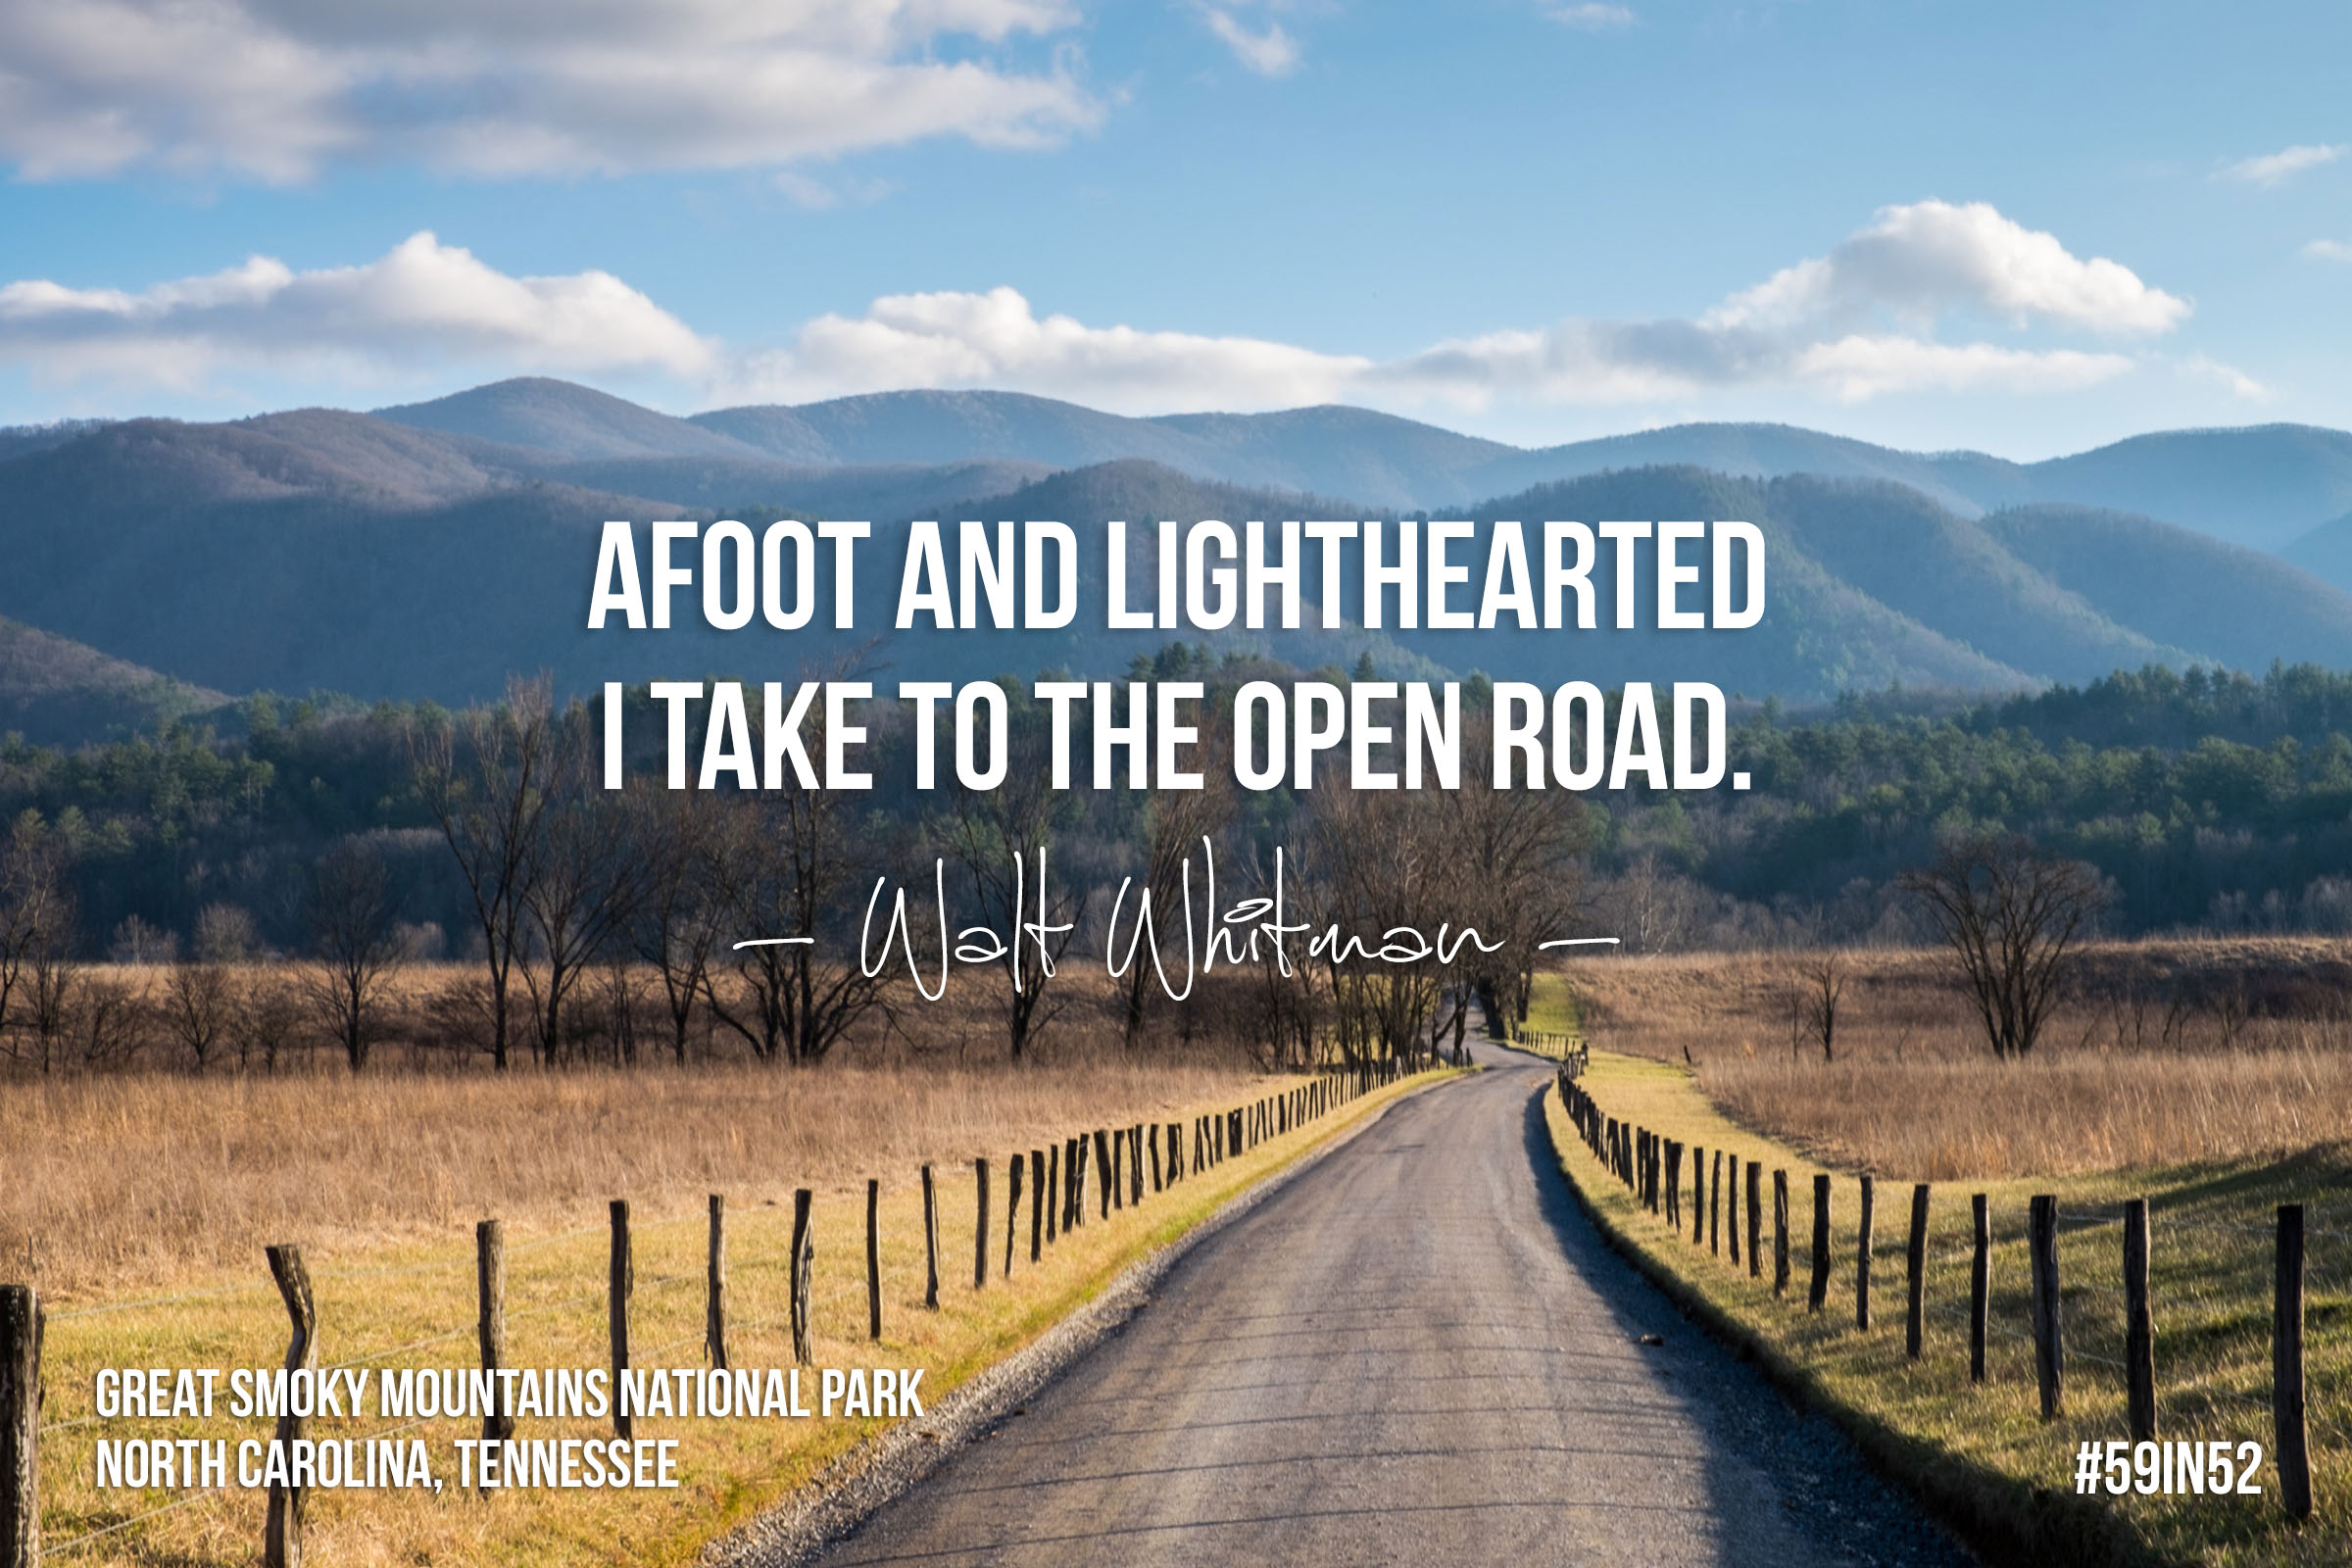 """Afoot and lighthearted I take to the open road."" -- Walt Whitman"